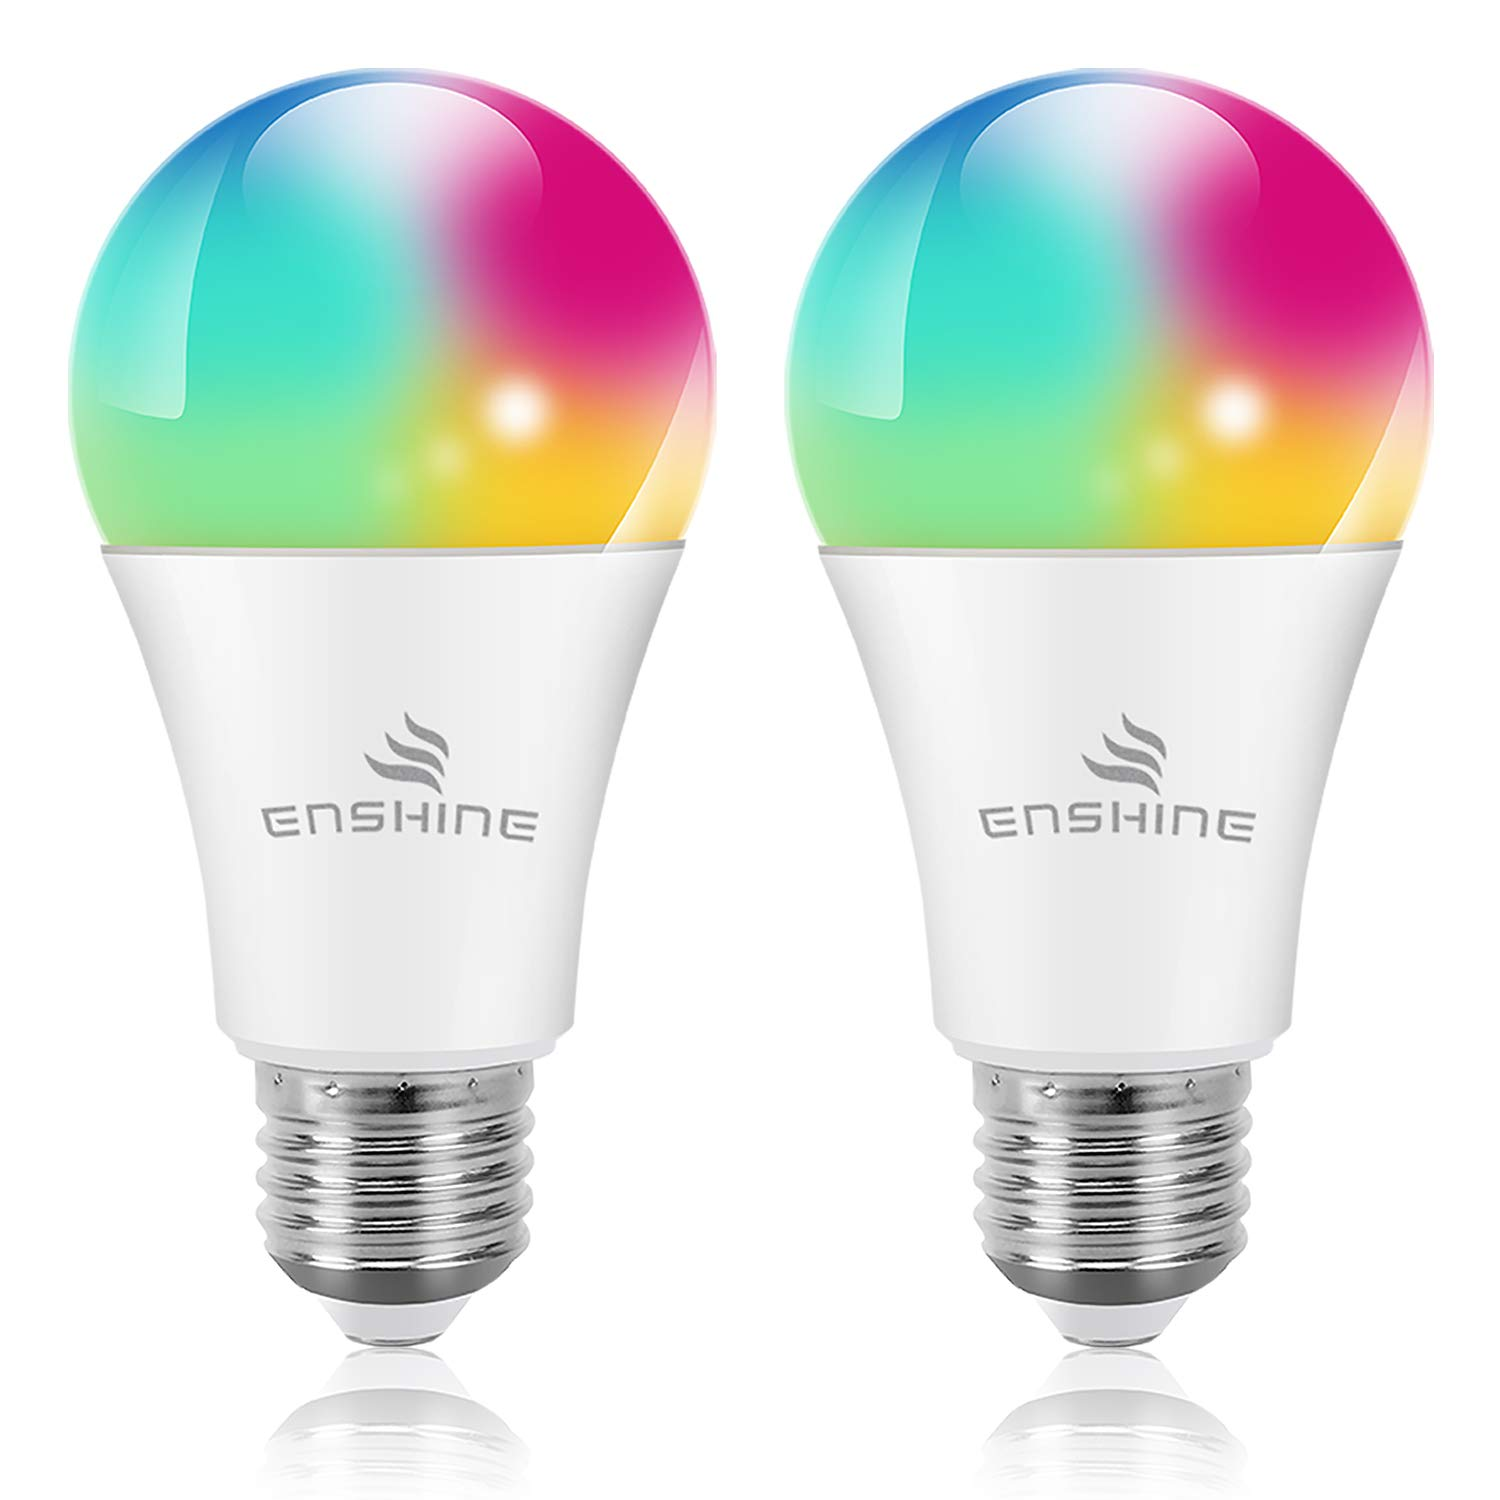 Awesome WiFi enabled smart bulbs at an affordable price -- great buy.